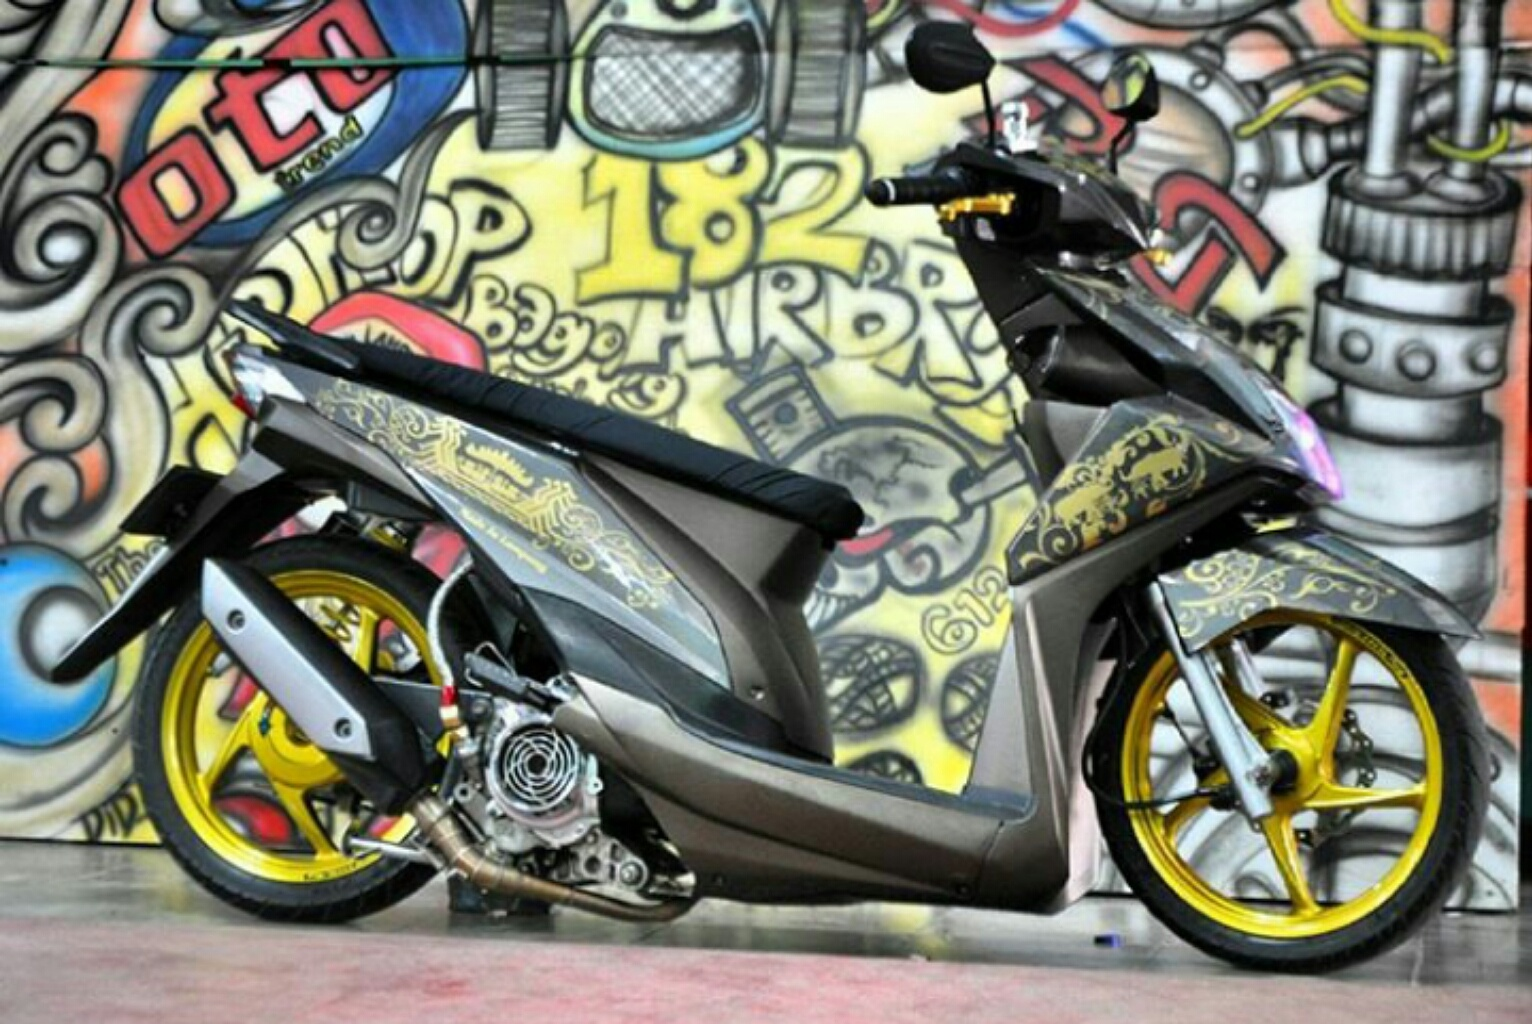 MODIF BEAT THAILOOK CEPER THAILOOKERS Blogs Concept Modified